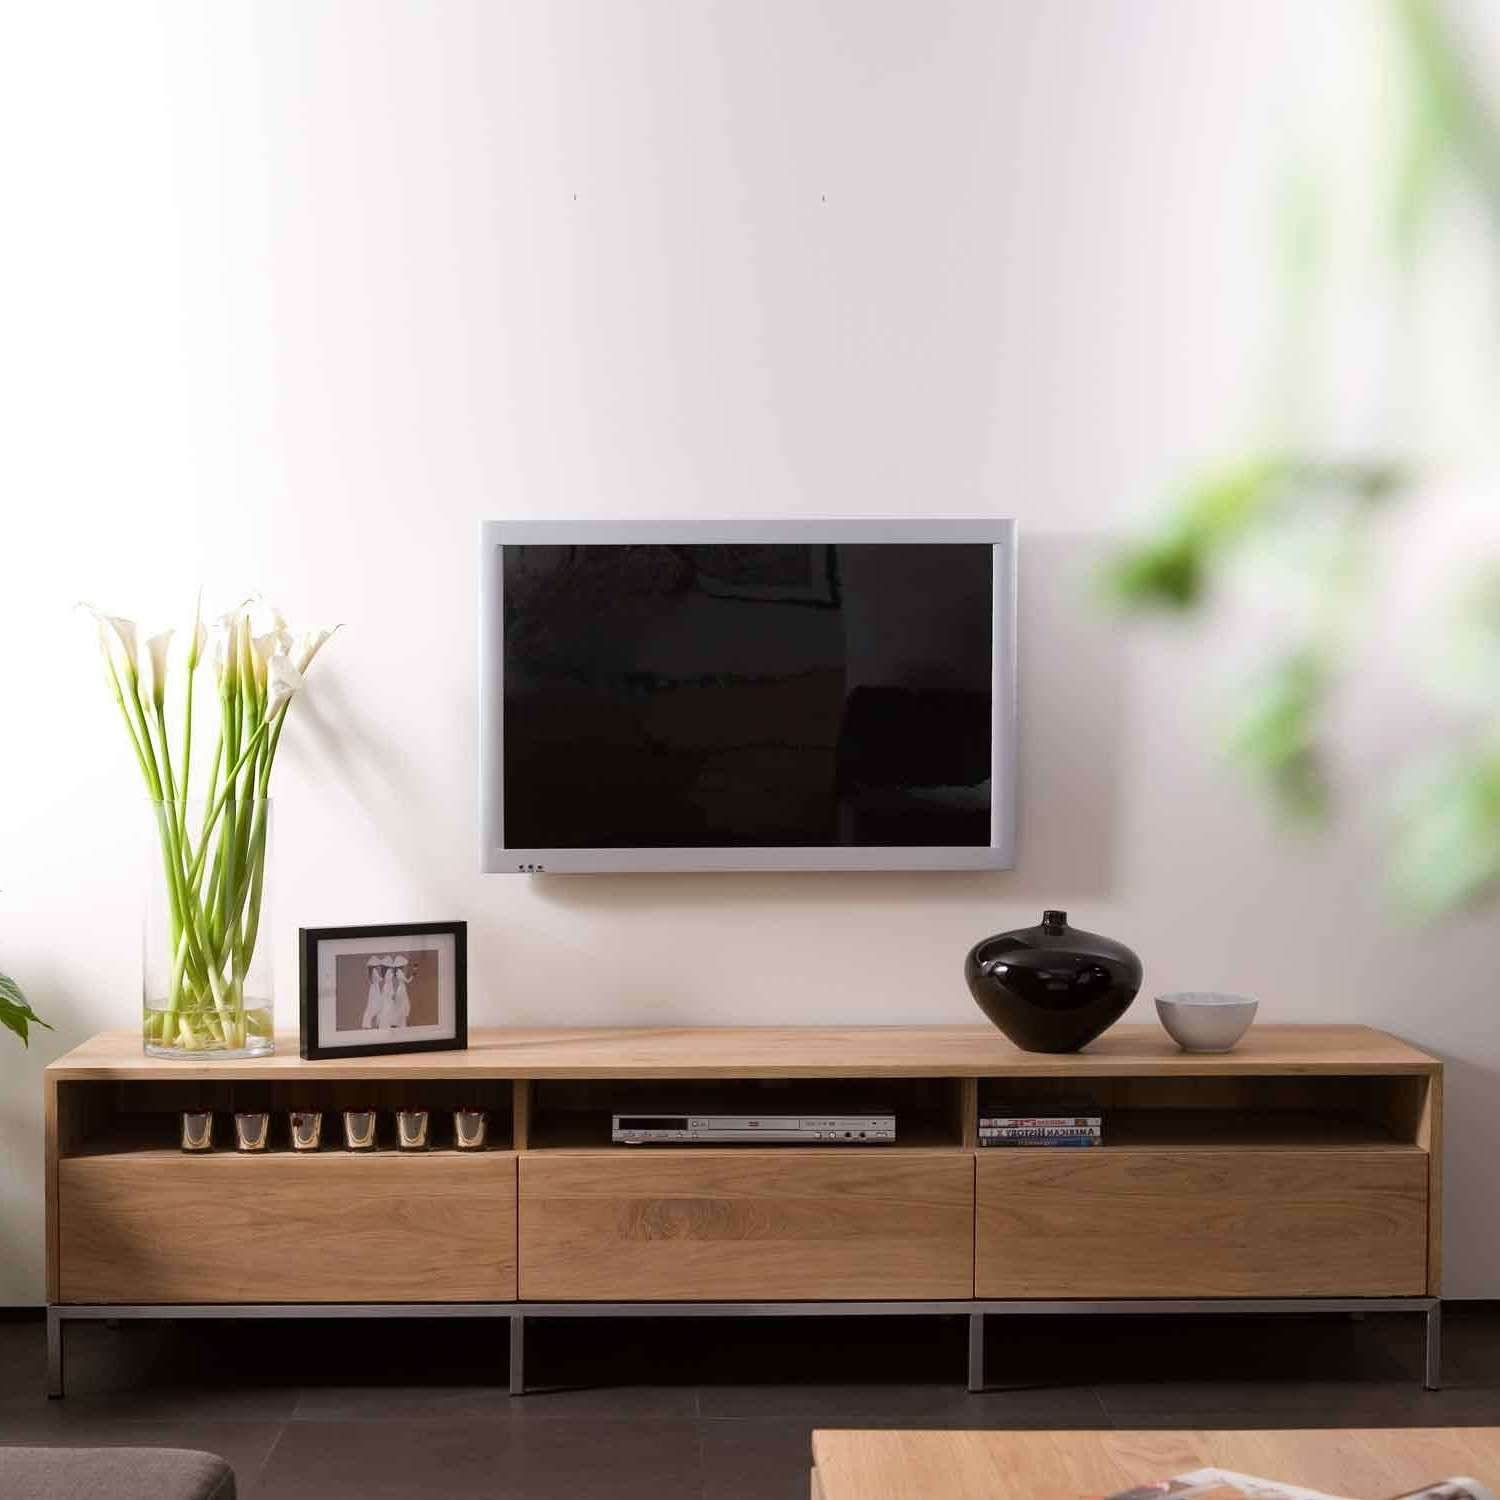 Ethnicraft Ligna Oak Tv Units | Solid Wood Furniture With Contemporary Oak Tv Cabinets (Gallery 8 of 20)